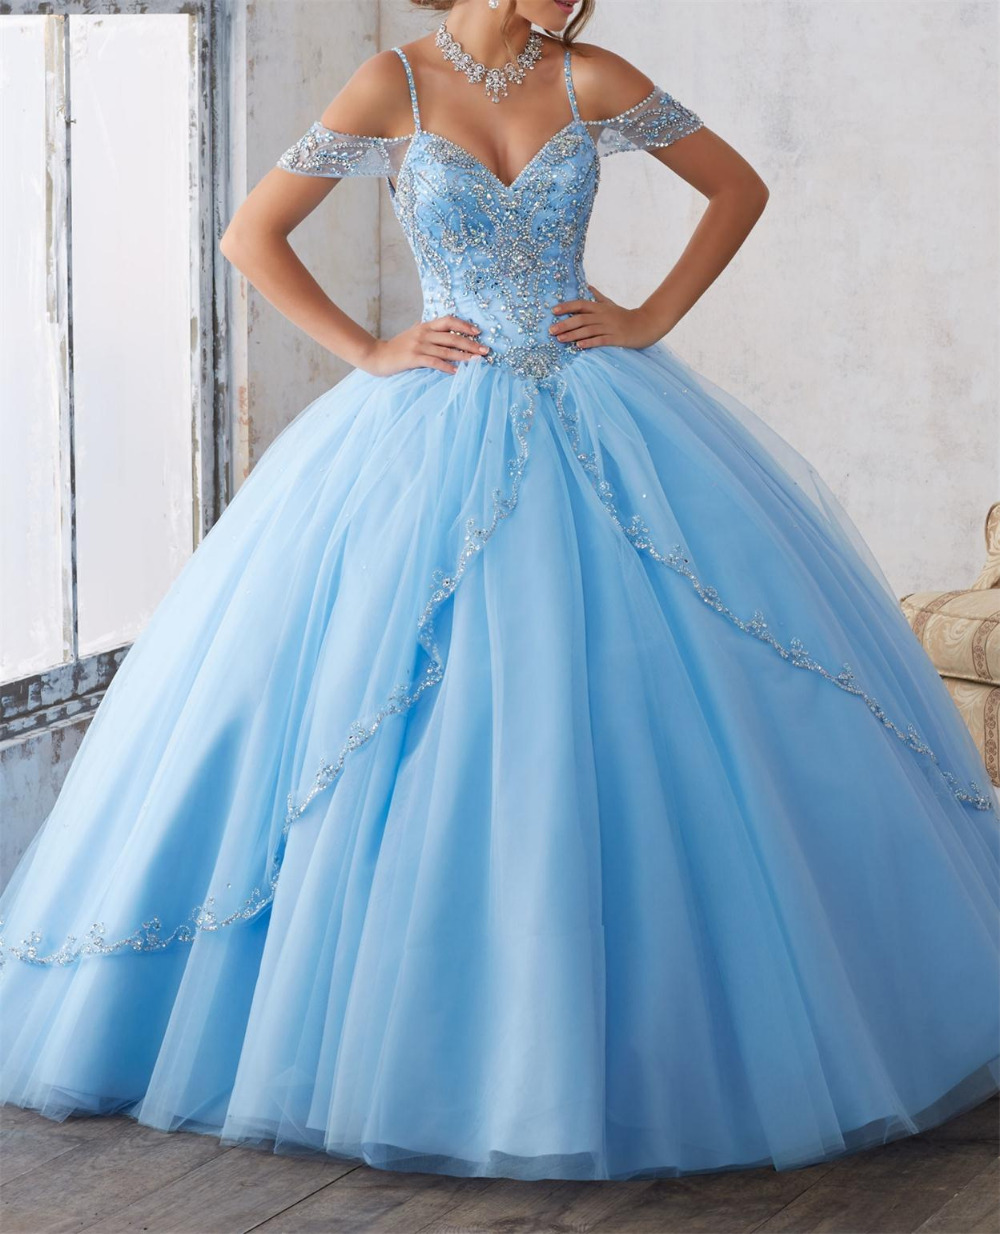 2019 New Light Blue Sweetheart Tulle Quinceanera Dresses Ball Gown Crystal Beading Slit Front Vestido Strapless Party Dress